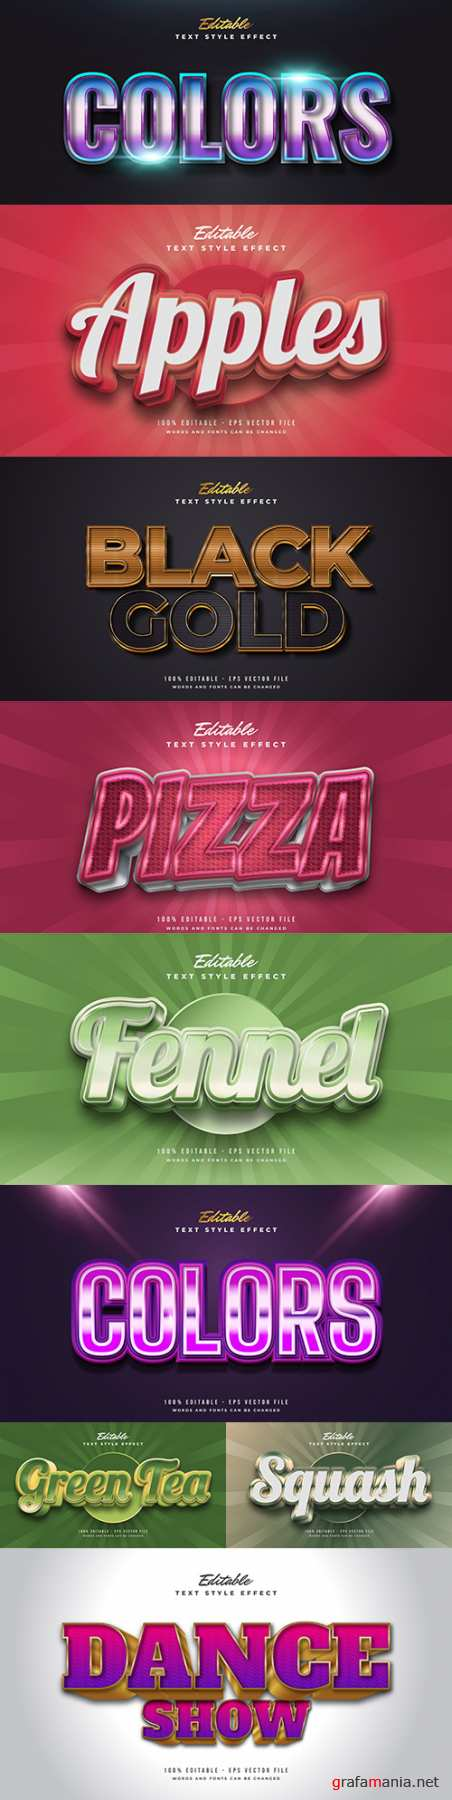 Editable font and 3d effect text design collection illustration 70